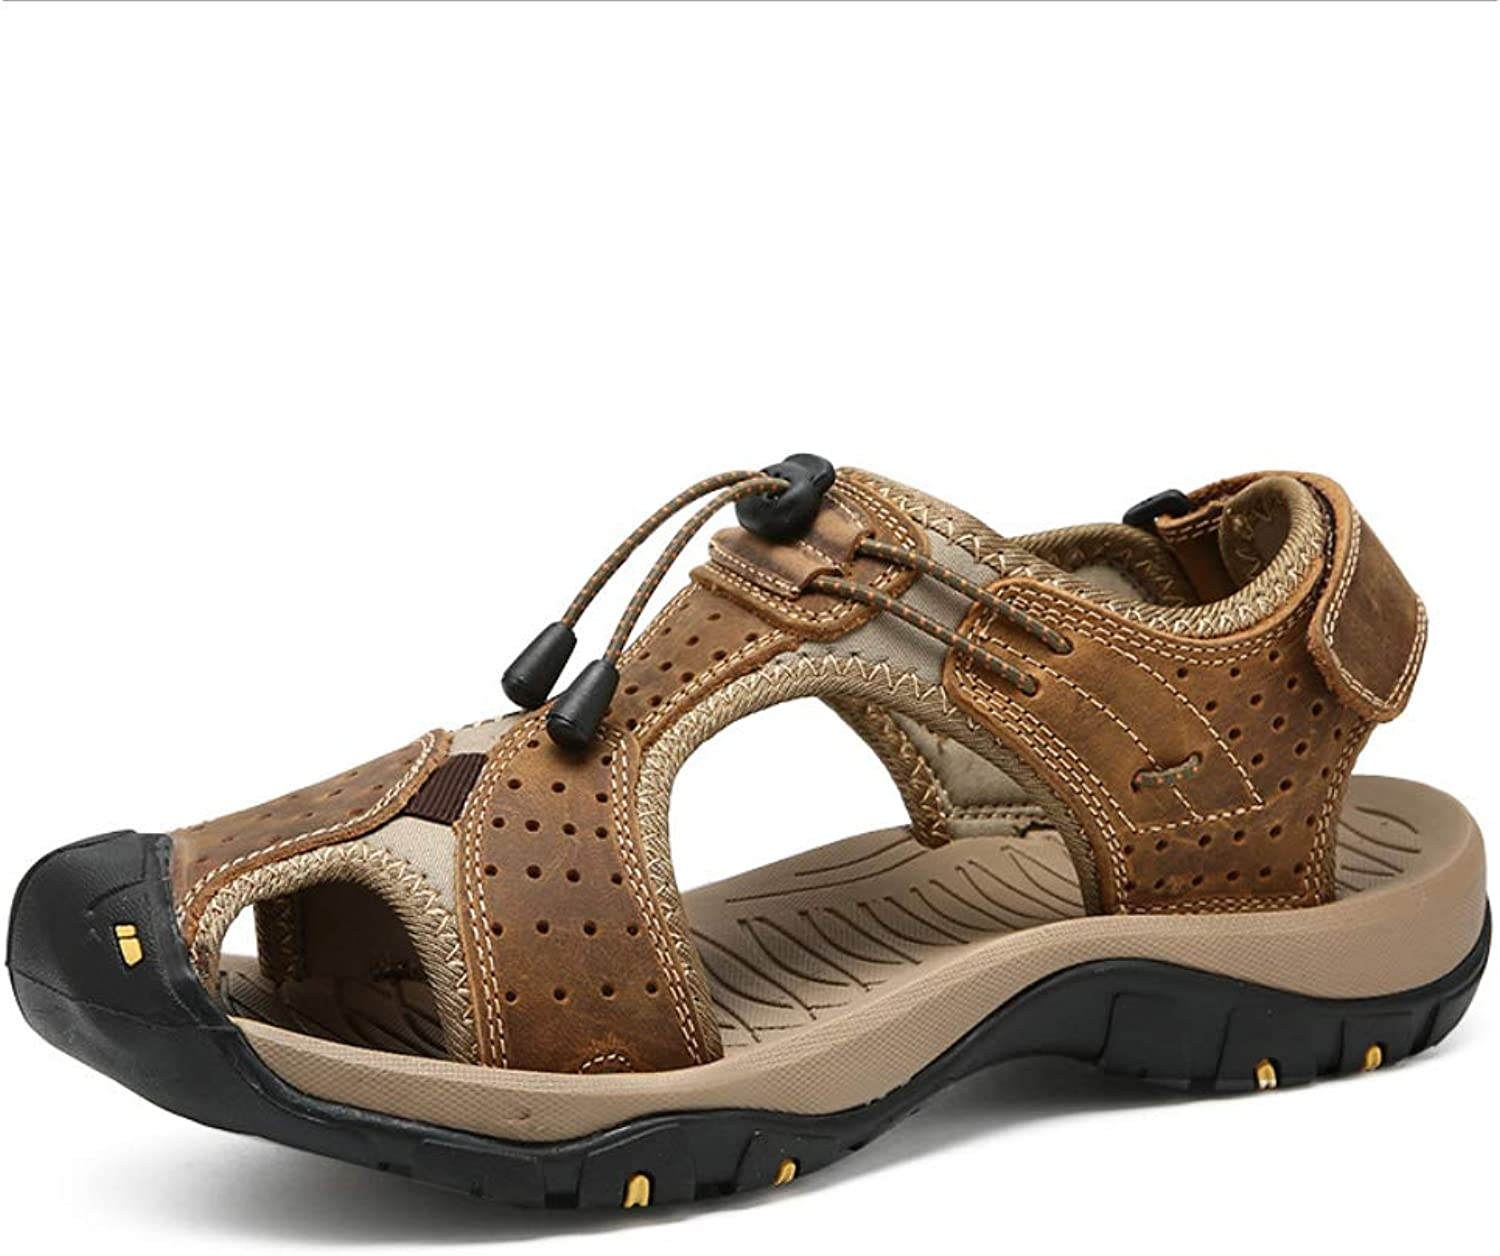 Outdoor Sports Sandals, Men's Leather Fisherman's Breathable Sandals, Summer Casual Sports shoes, Walking Beach Travel, Baotou Large Size Shock Absorption, Quick Dry and Light,Brown,38